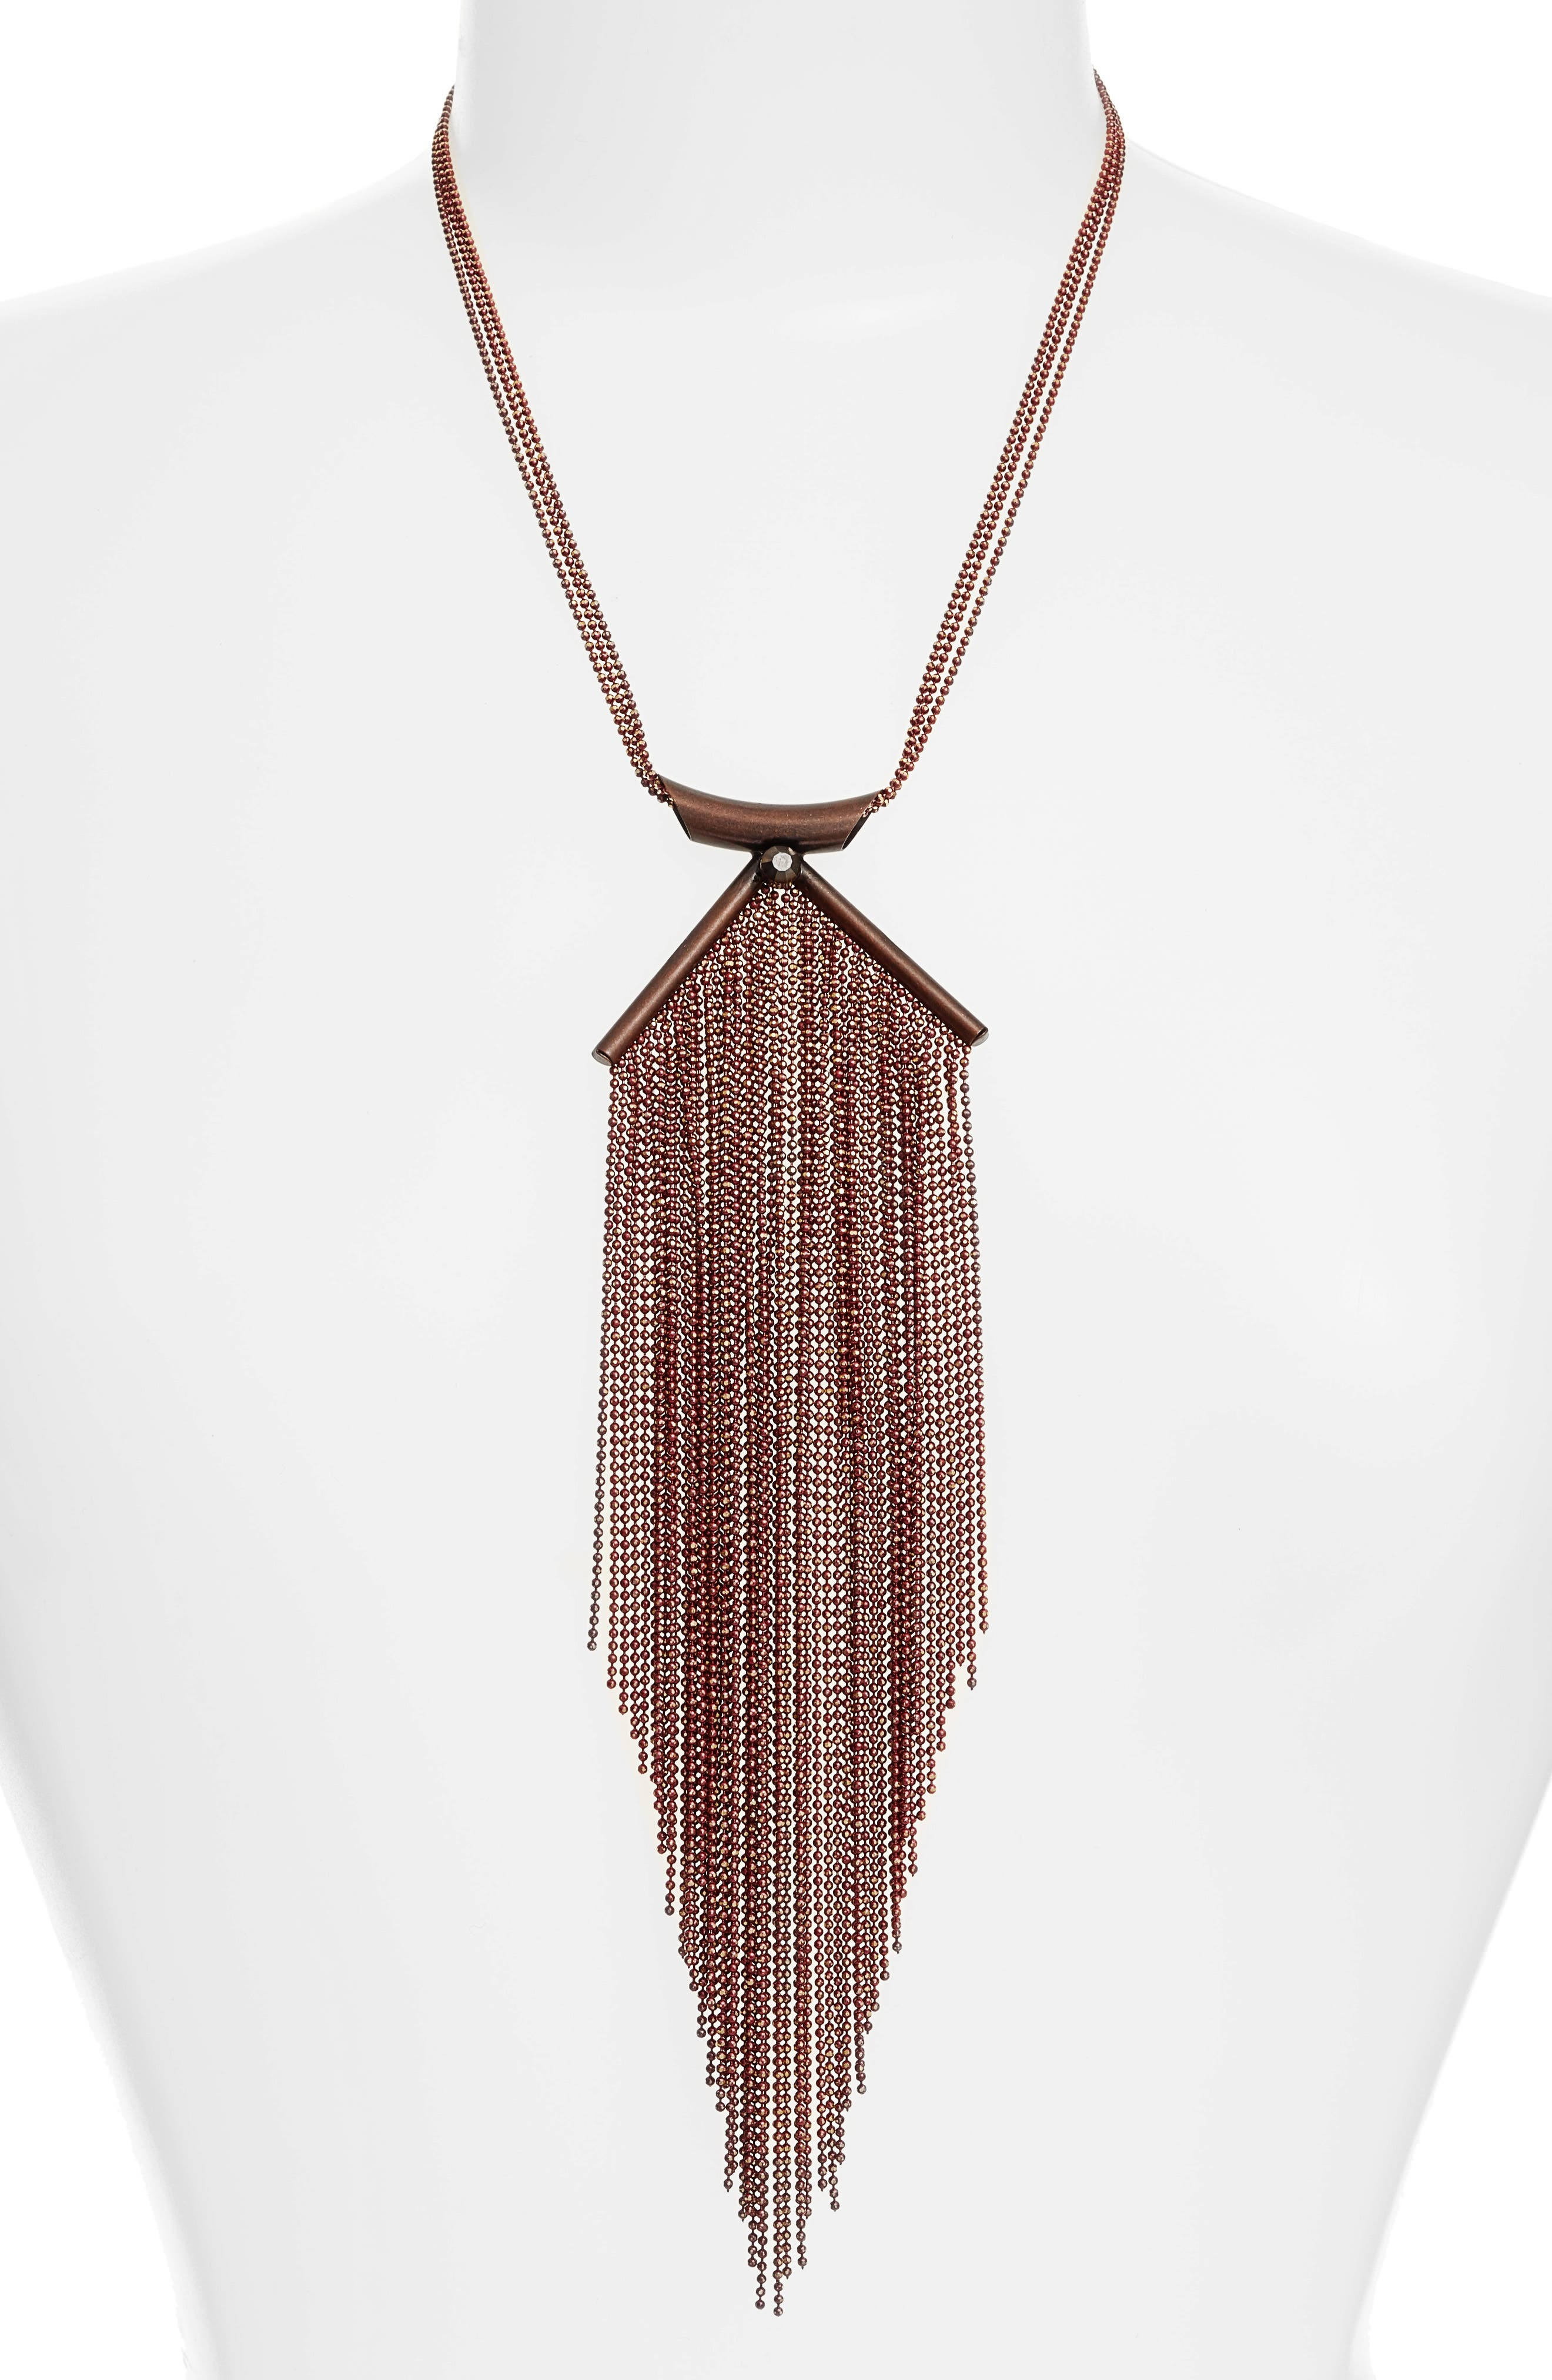 Lina Waterfall Necklace,                         Main,                         color, Copper